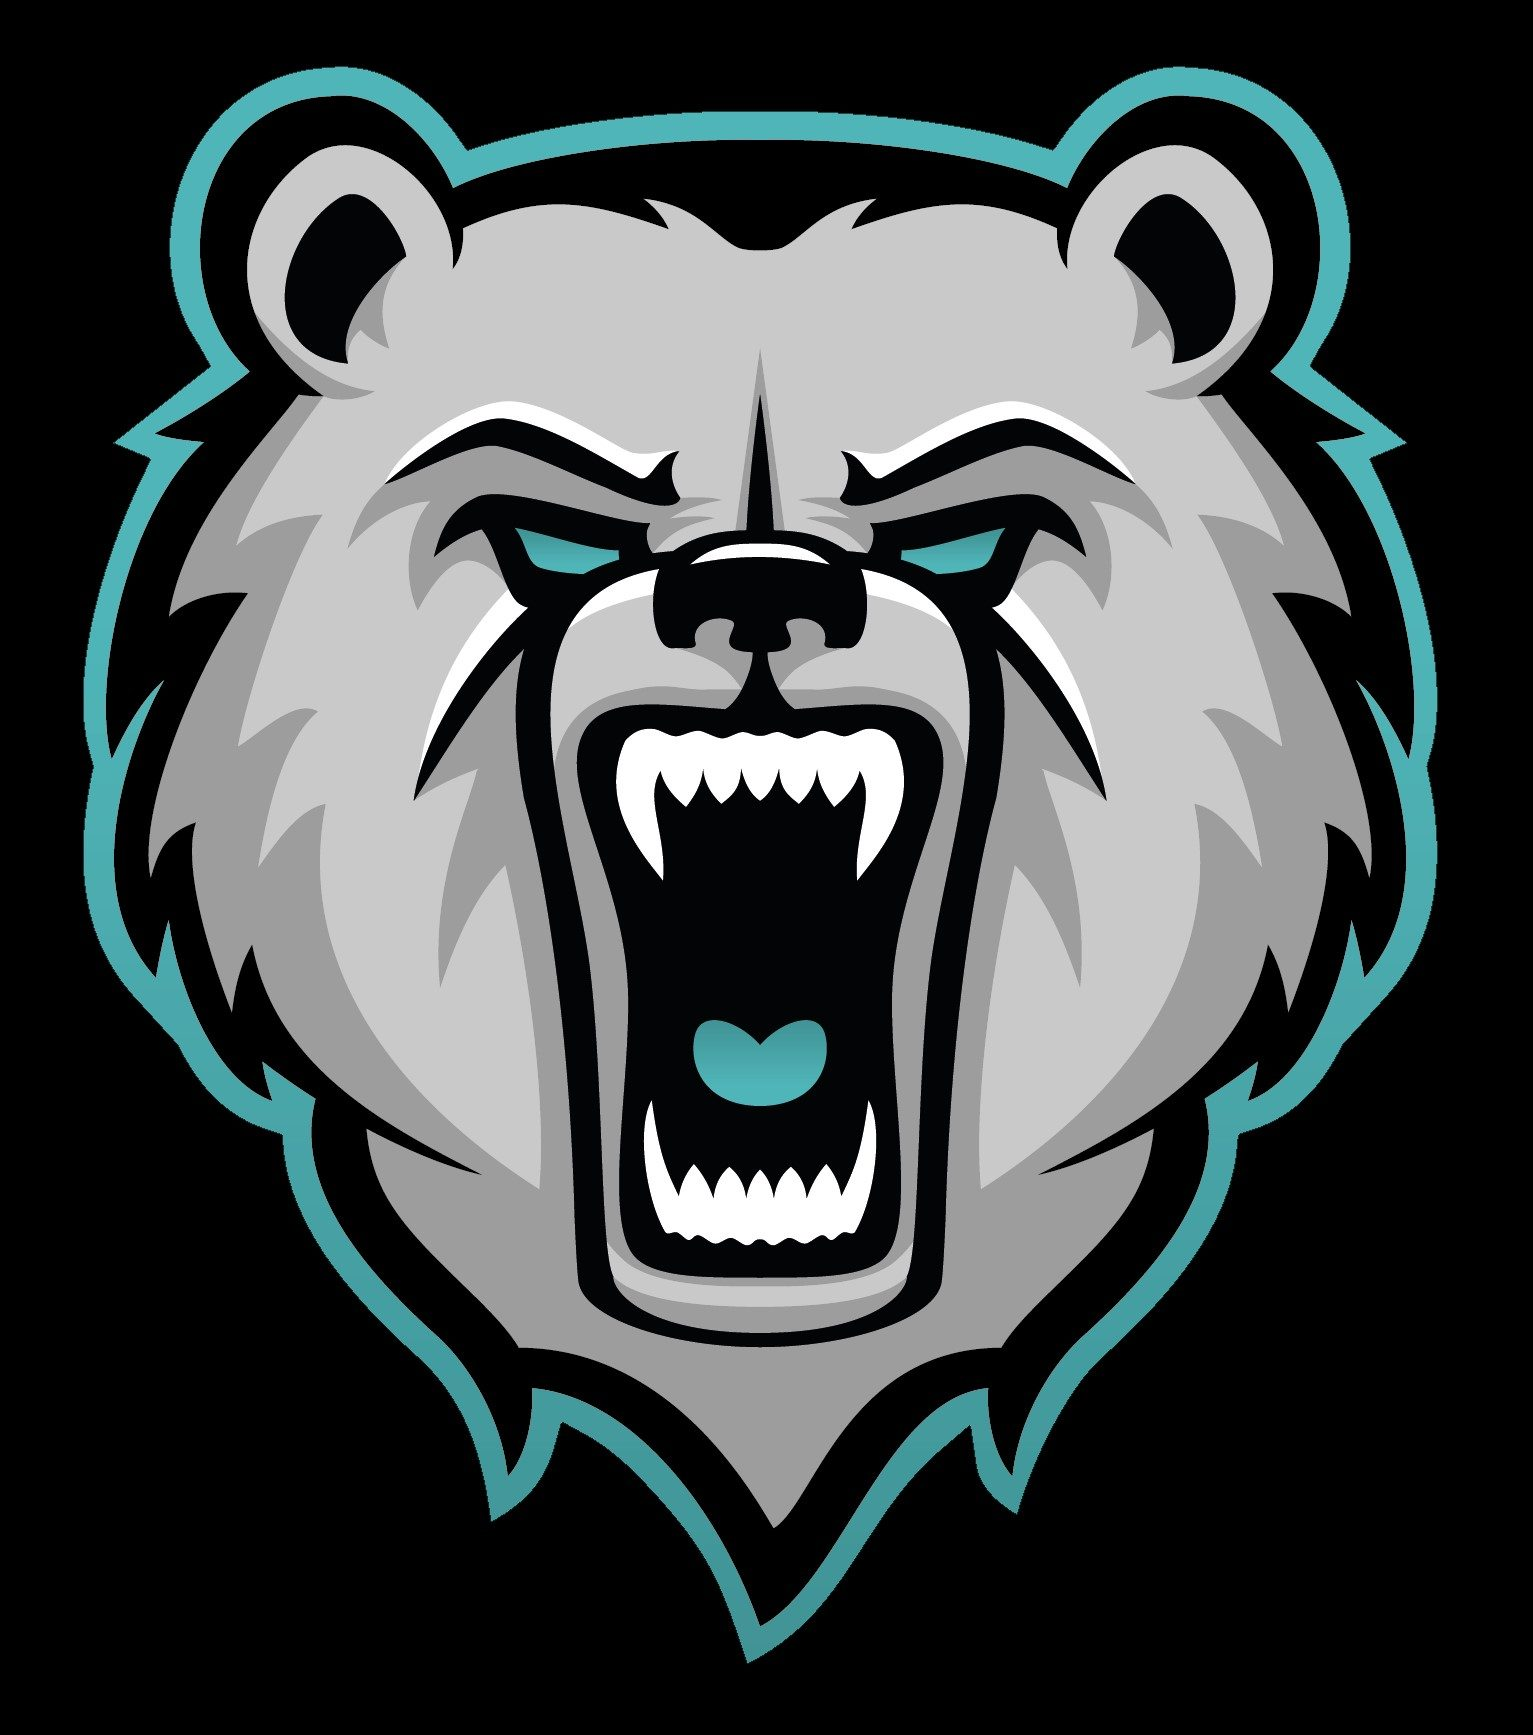 Cheshire Bears Women's American Football Club